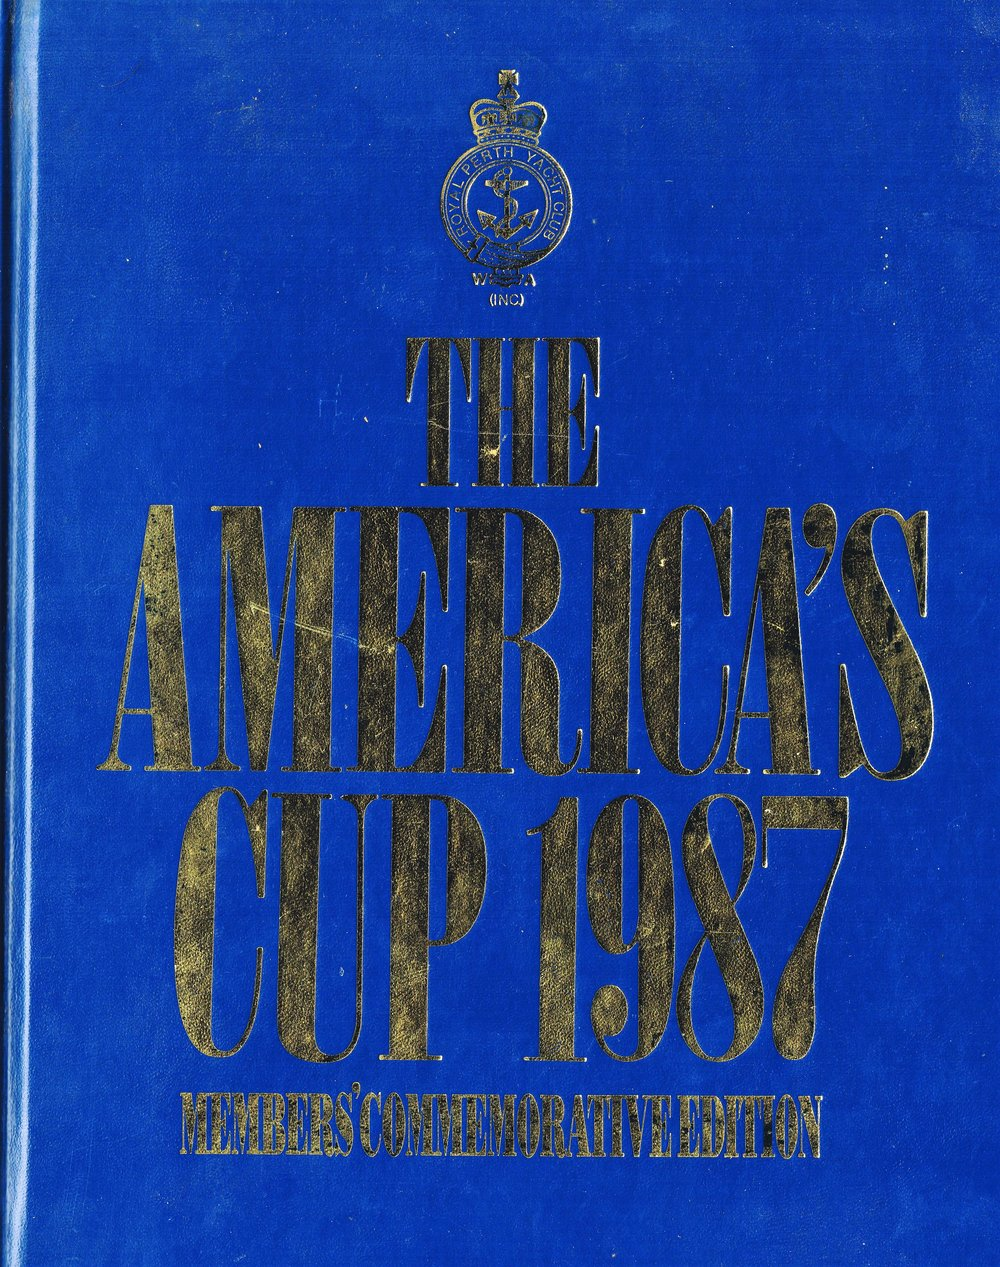 The-Americas-Cup-1987